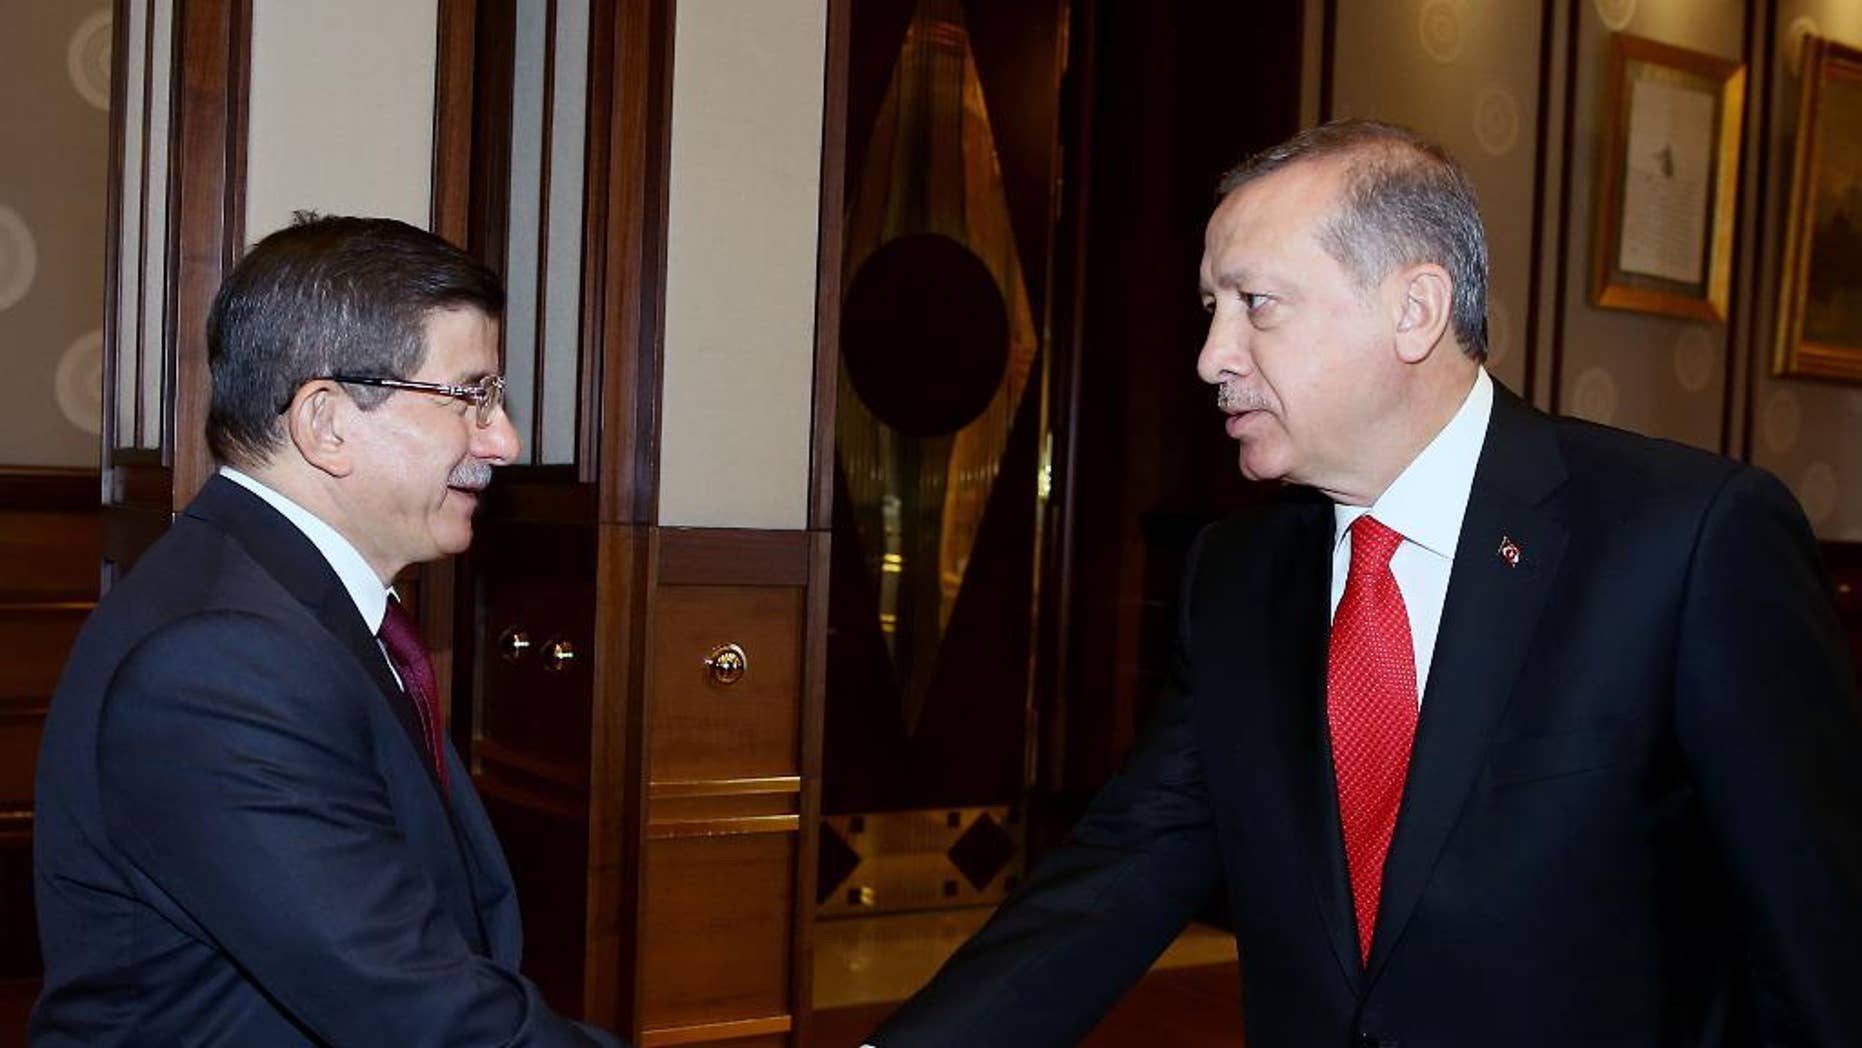 Turkey's President Recep Tayyip Erdogan, right, shakes hands with Prime Minister Ahmet Davutoglu before a meeting in Ankara, Turkey, Tuesday, Aug. 25, 2015. Erdogan on Tuesday appointed Davutoglu to form an interim government that will lead the country into a new election, likely to take place on Nov. 1. Erdogan formally called for a new election late on Monday, following an inconclusive vote in June, and the collapse of coalition-building efforts.(Presidential Press Service via AP, Pool)